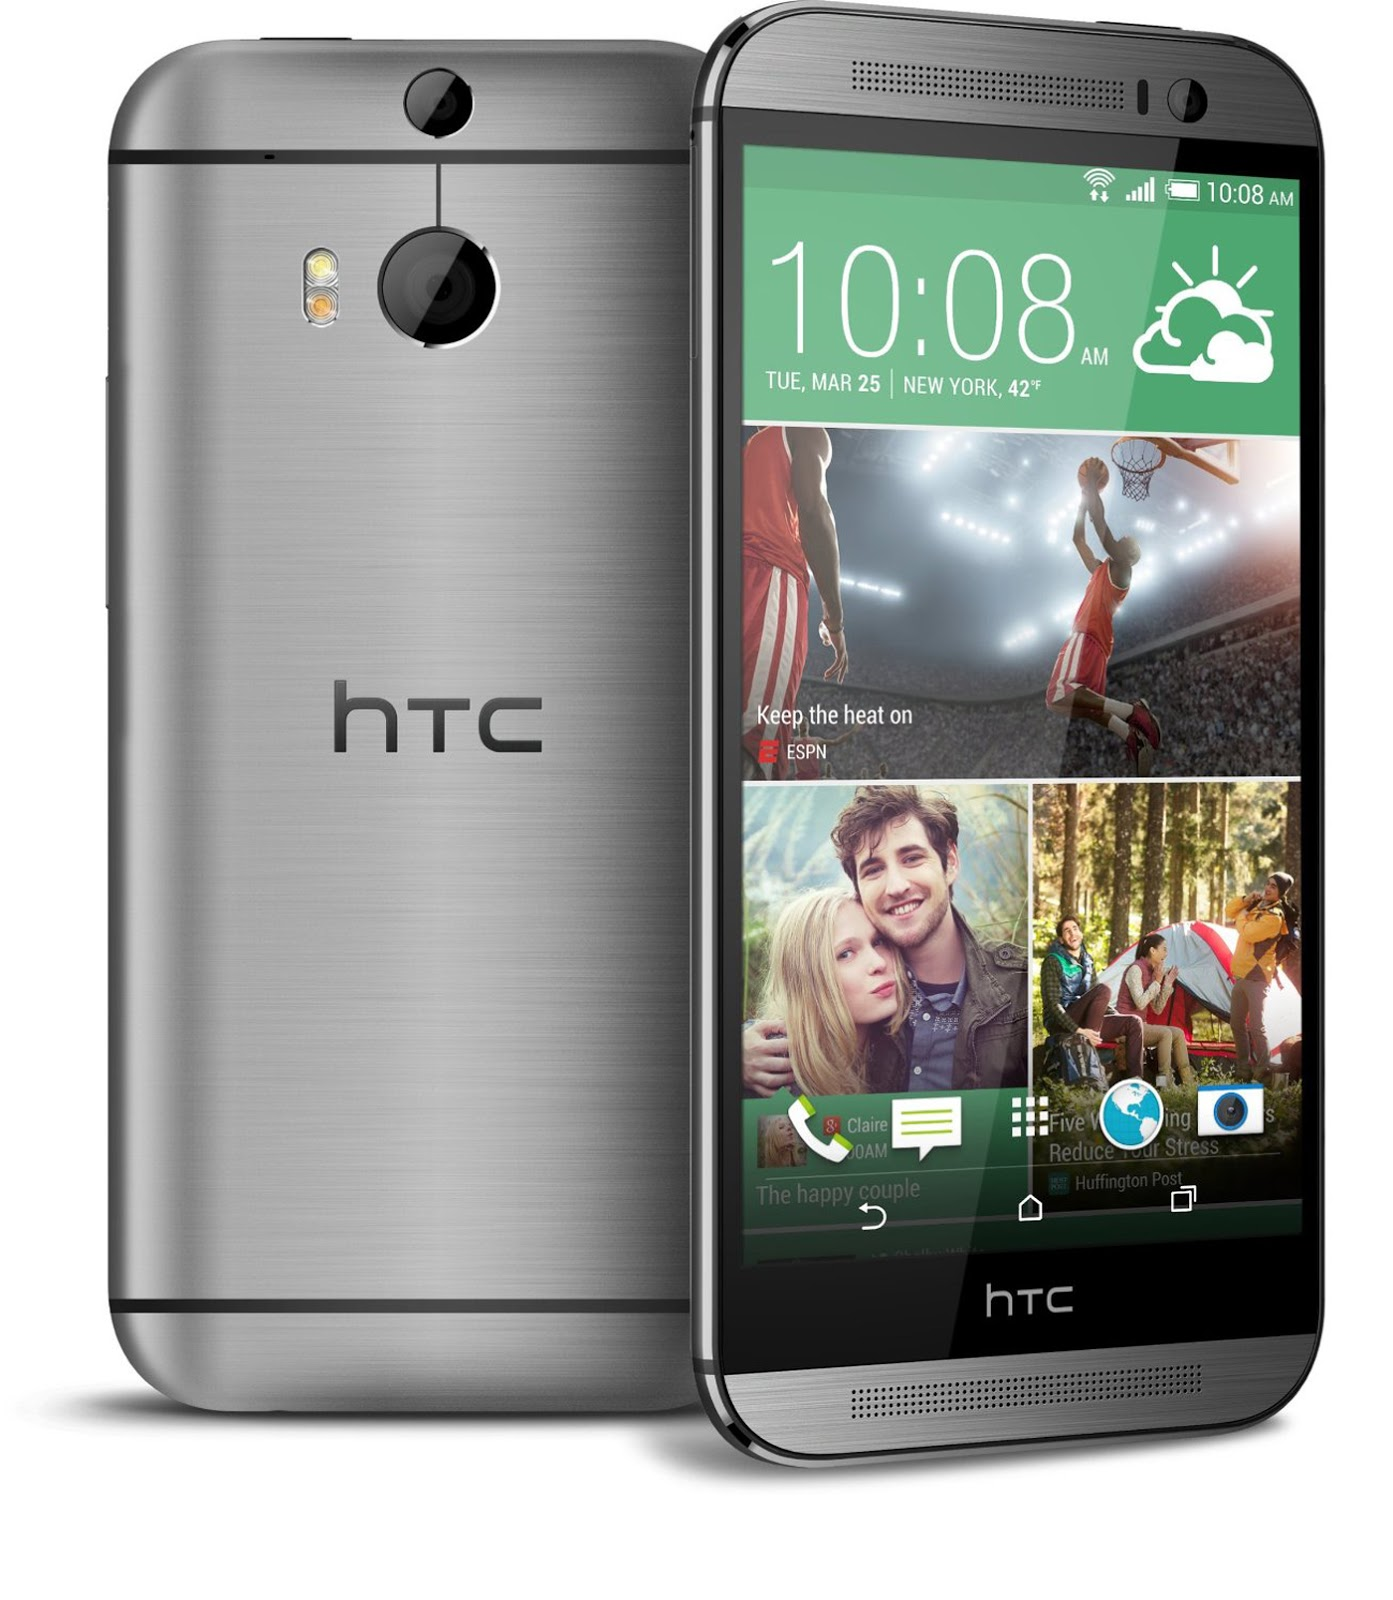 HTC One M8 user manual,HTC One M8 user guide manual,HTC One M8 user manual pdf‎,HTC One M8 user manual guide,HTC One M8 owners manuals online,HTC One M8 user guides, User Guide Manual,User Manual,User Manual Guide,User Manual PDF‎,